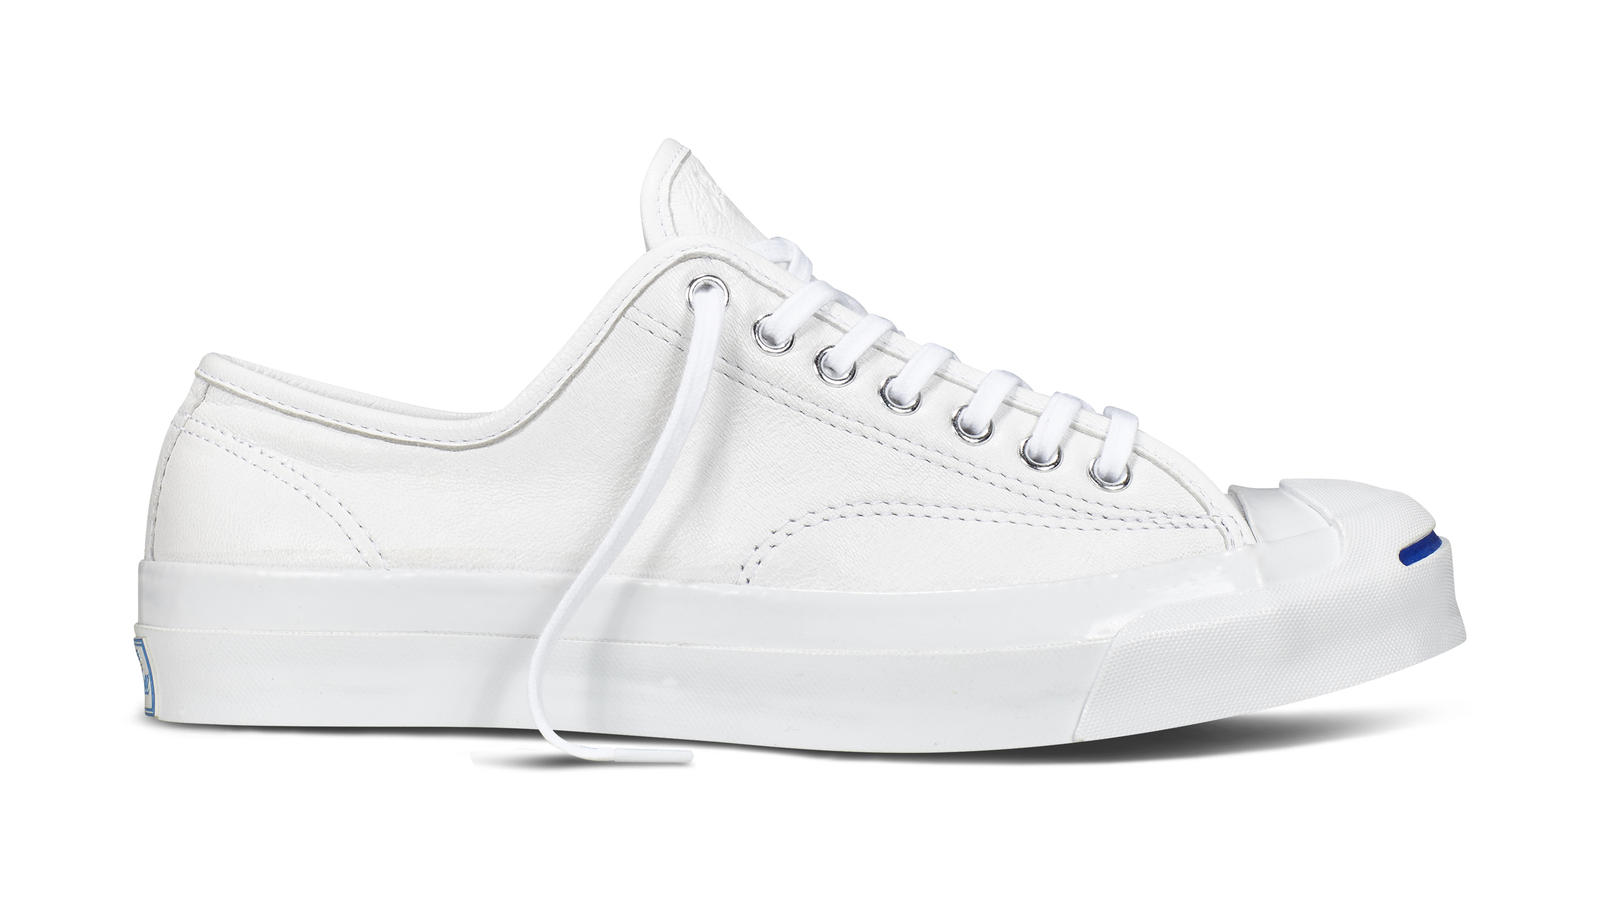 CONVERSE JACK PURCELL UNVEILS NEW SIGNATURE SNEAKER IN